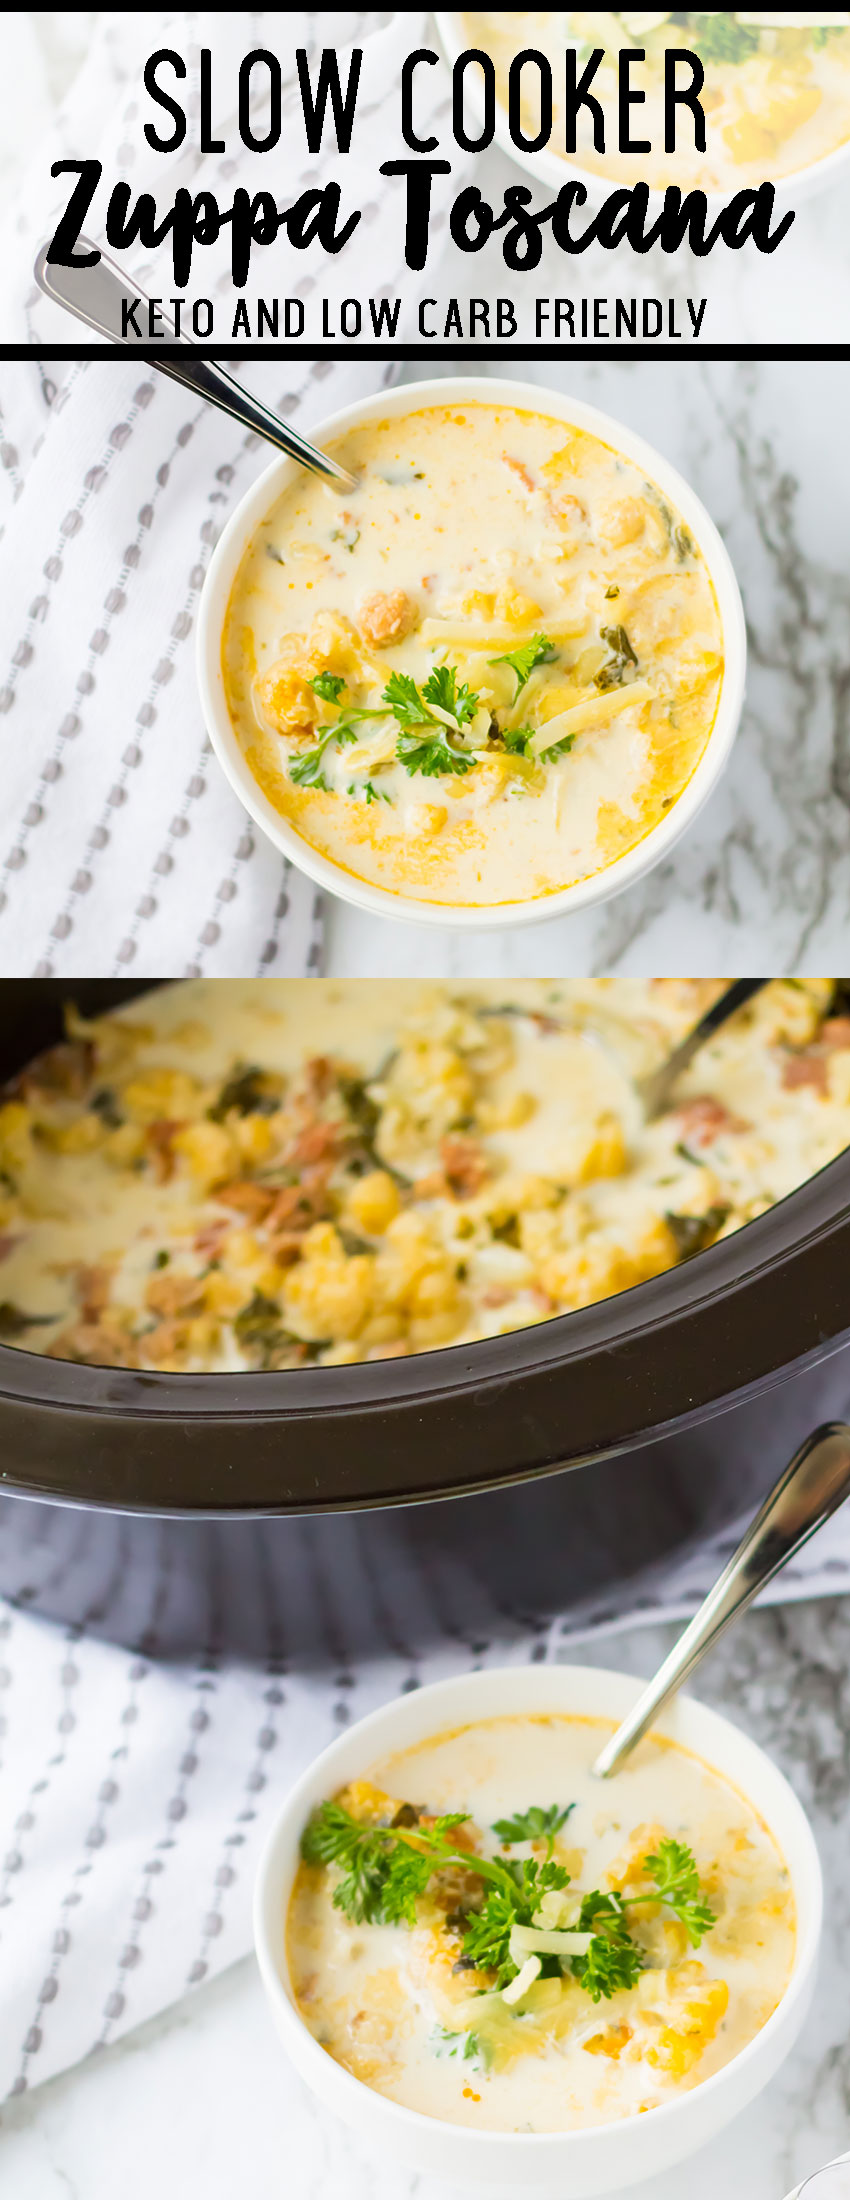 Slow Cooker Zuppa Toscana is a low carb soup